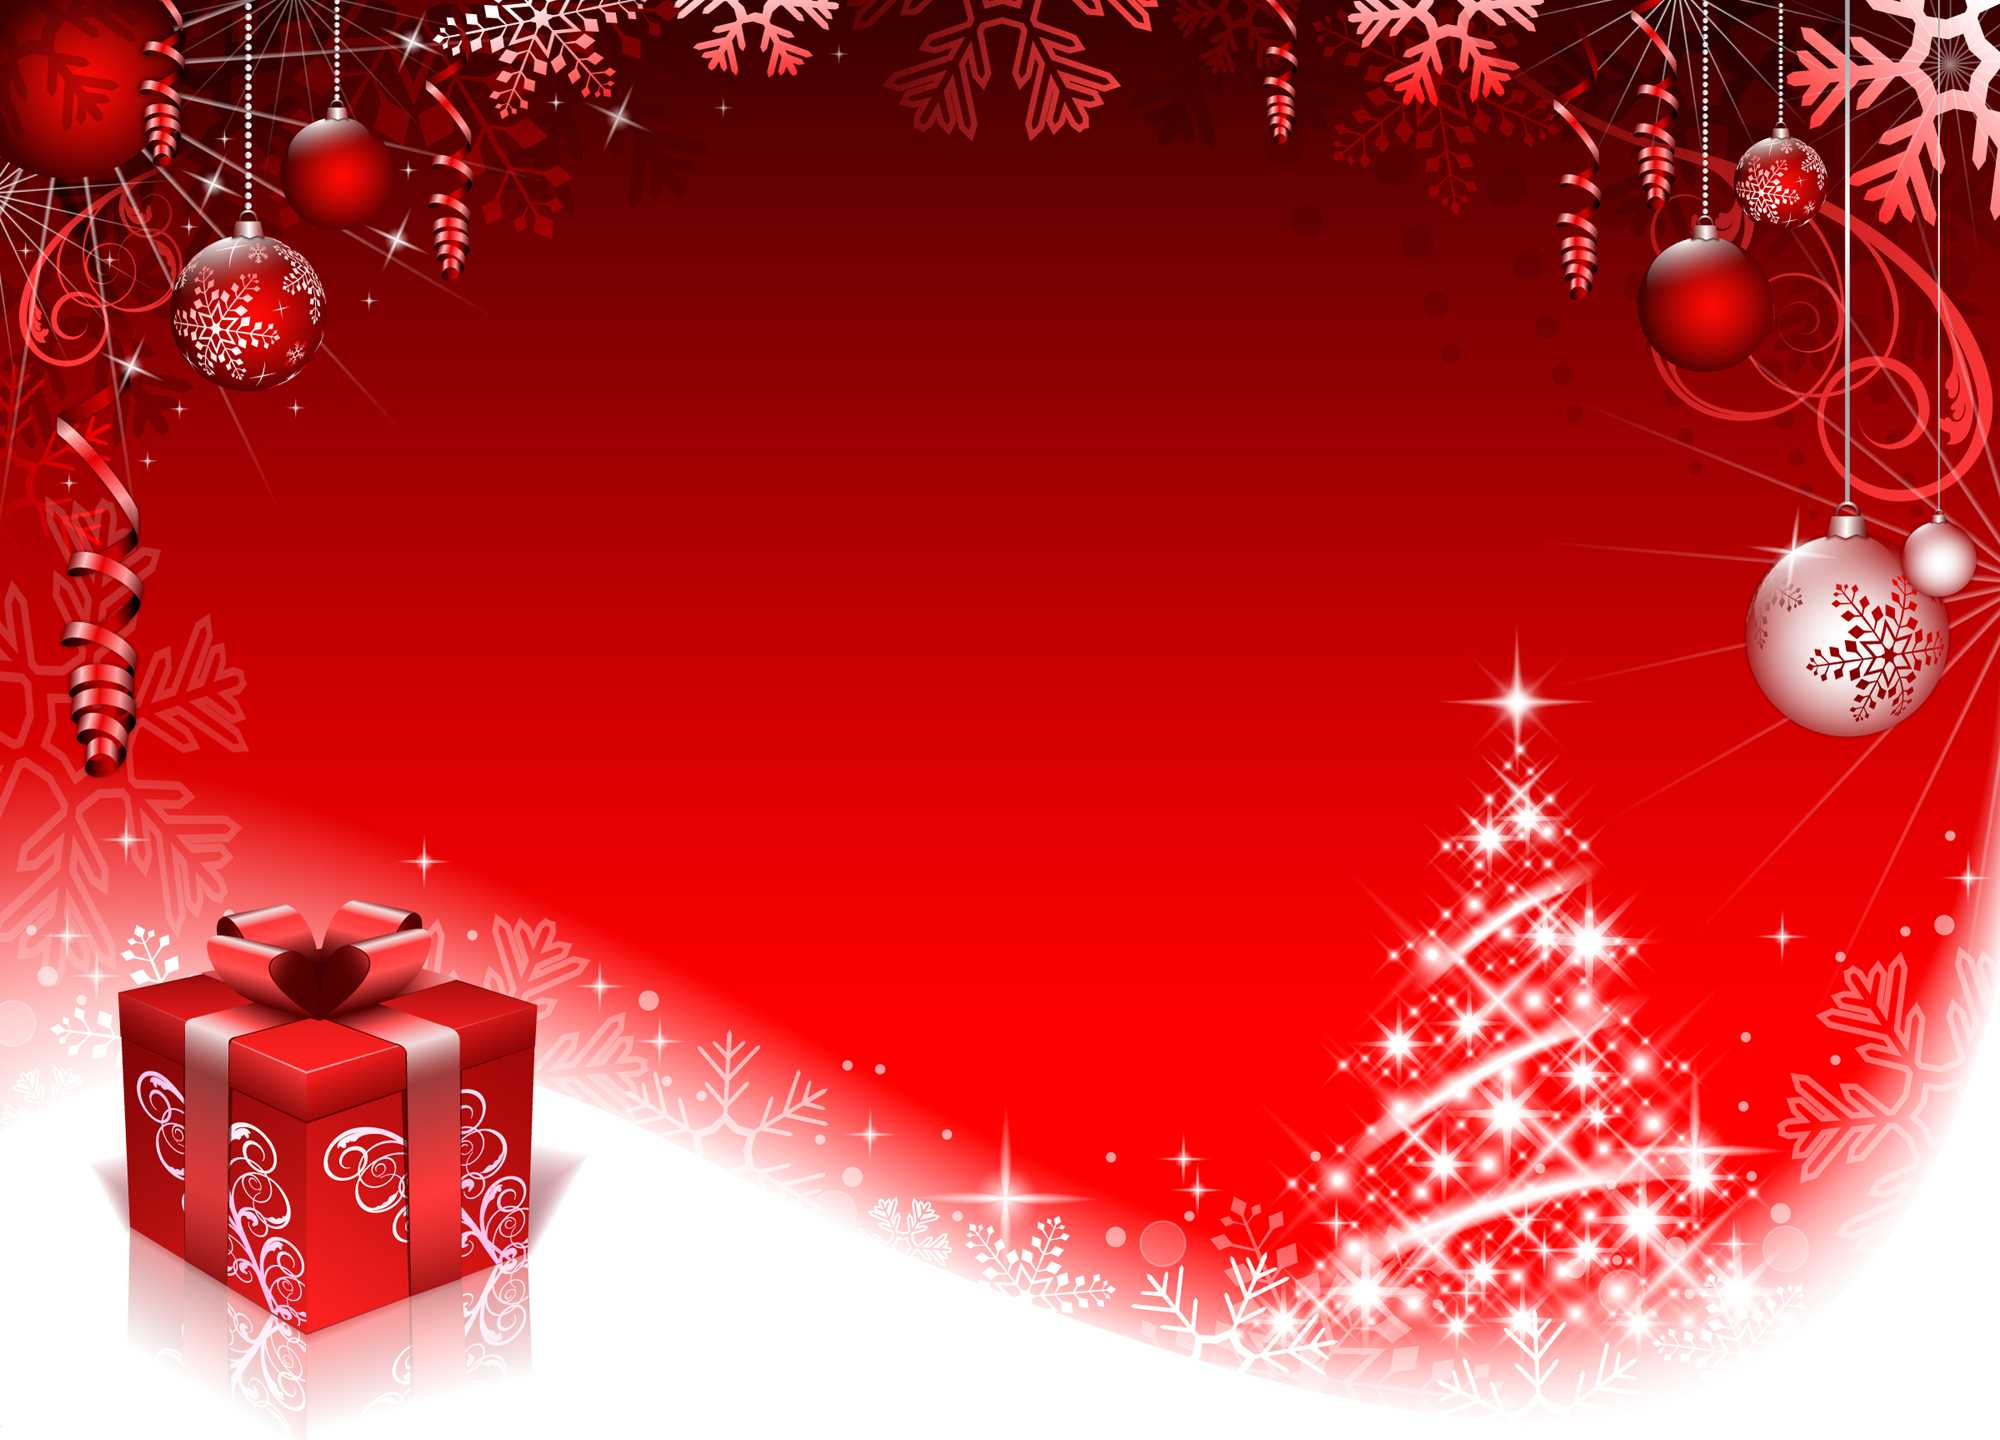 16 Free Psd Christmas Templates For Photoshop Images - Free In Free Christmas Card Templates For Photoshop